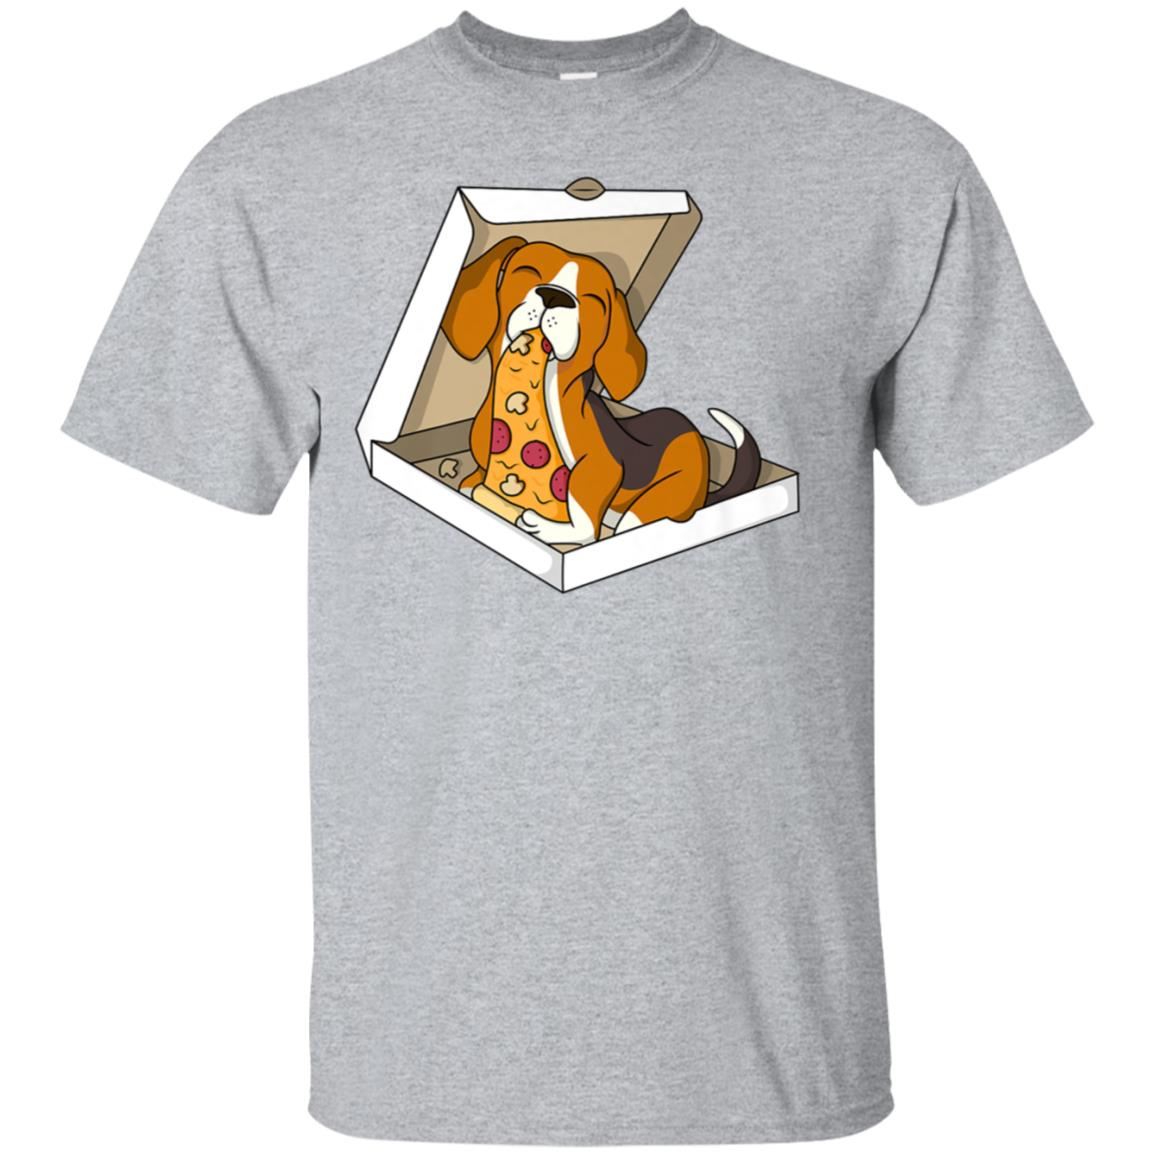 Beagle Eating Pizza T-Shirt Funny Dog Shirt 99promocode